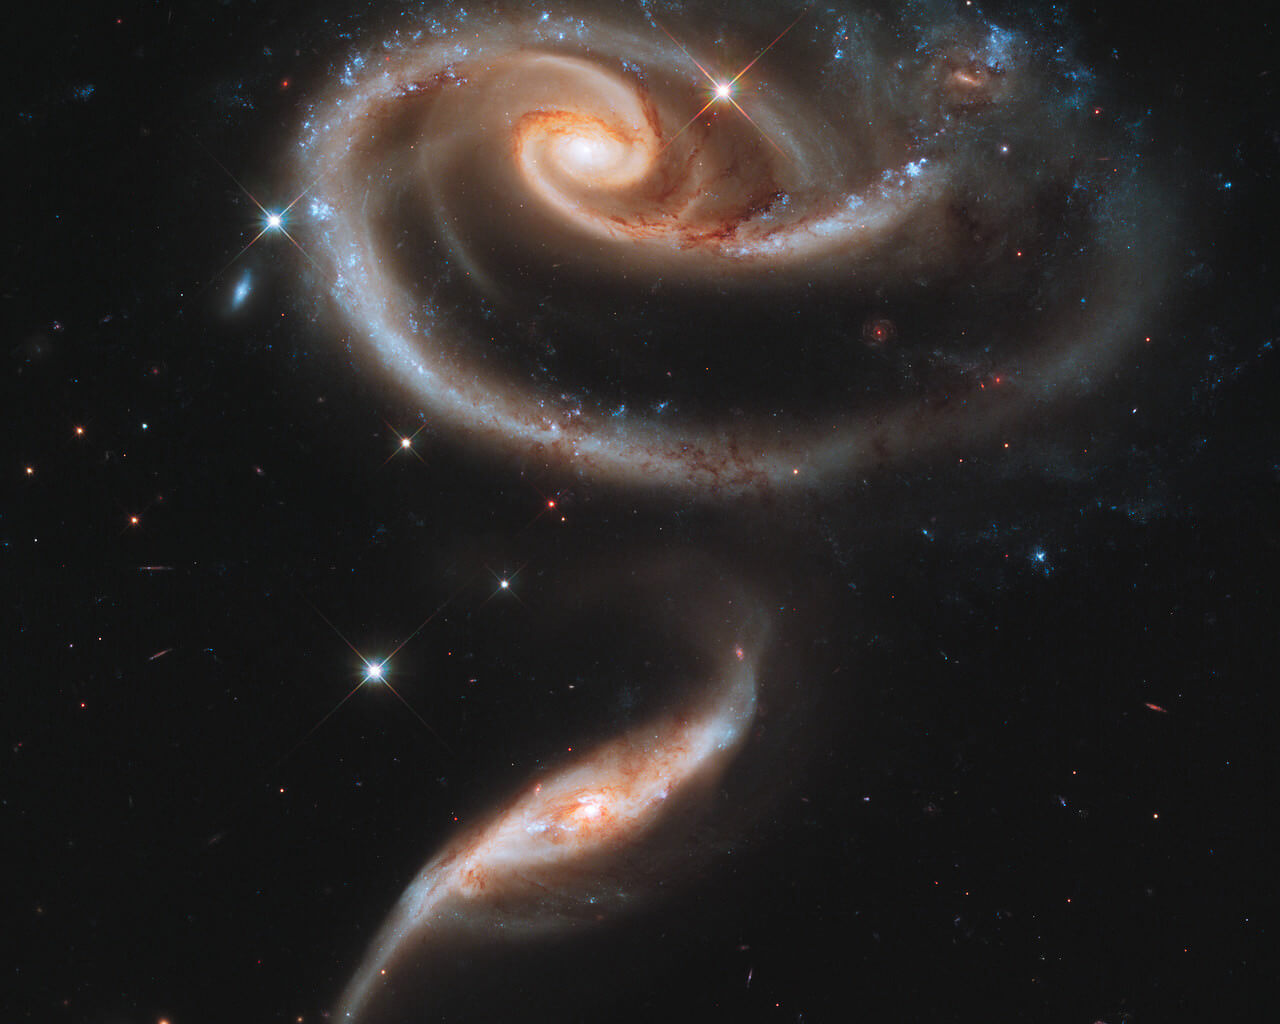 space is so cool - hubble pictures 15 (1)